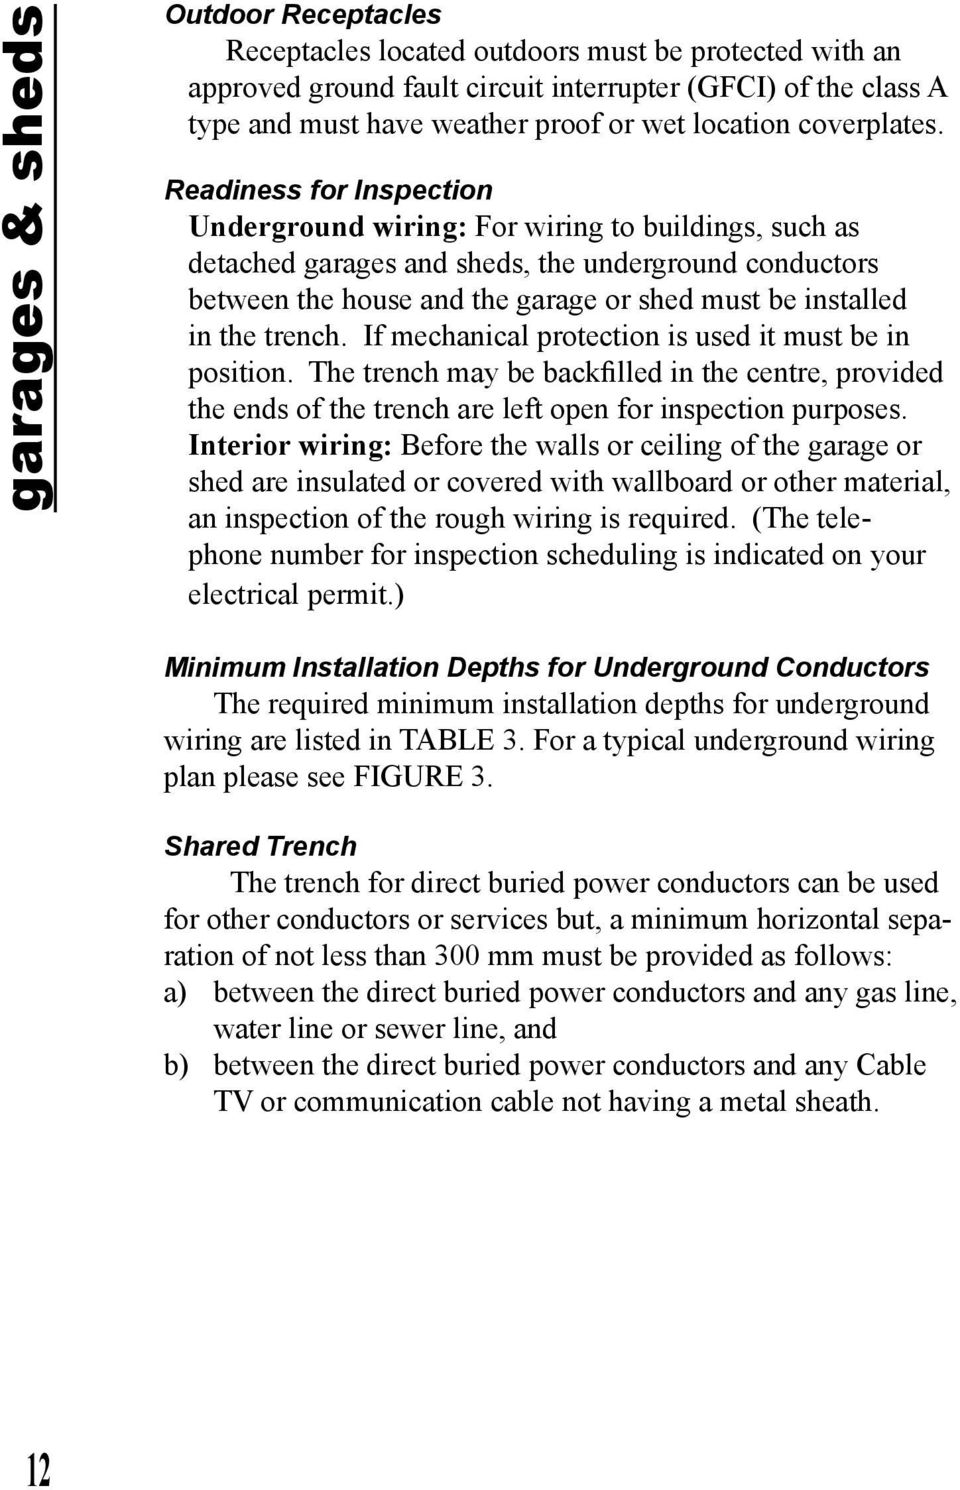 Electrical Installations A Homeowner Guide To The Winnipeg Can I Use Romex In My Unfinished Detached Garage Or Readiness For Inspection Underground Wiring Buildings Such As Garages And